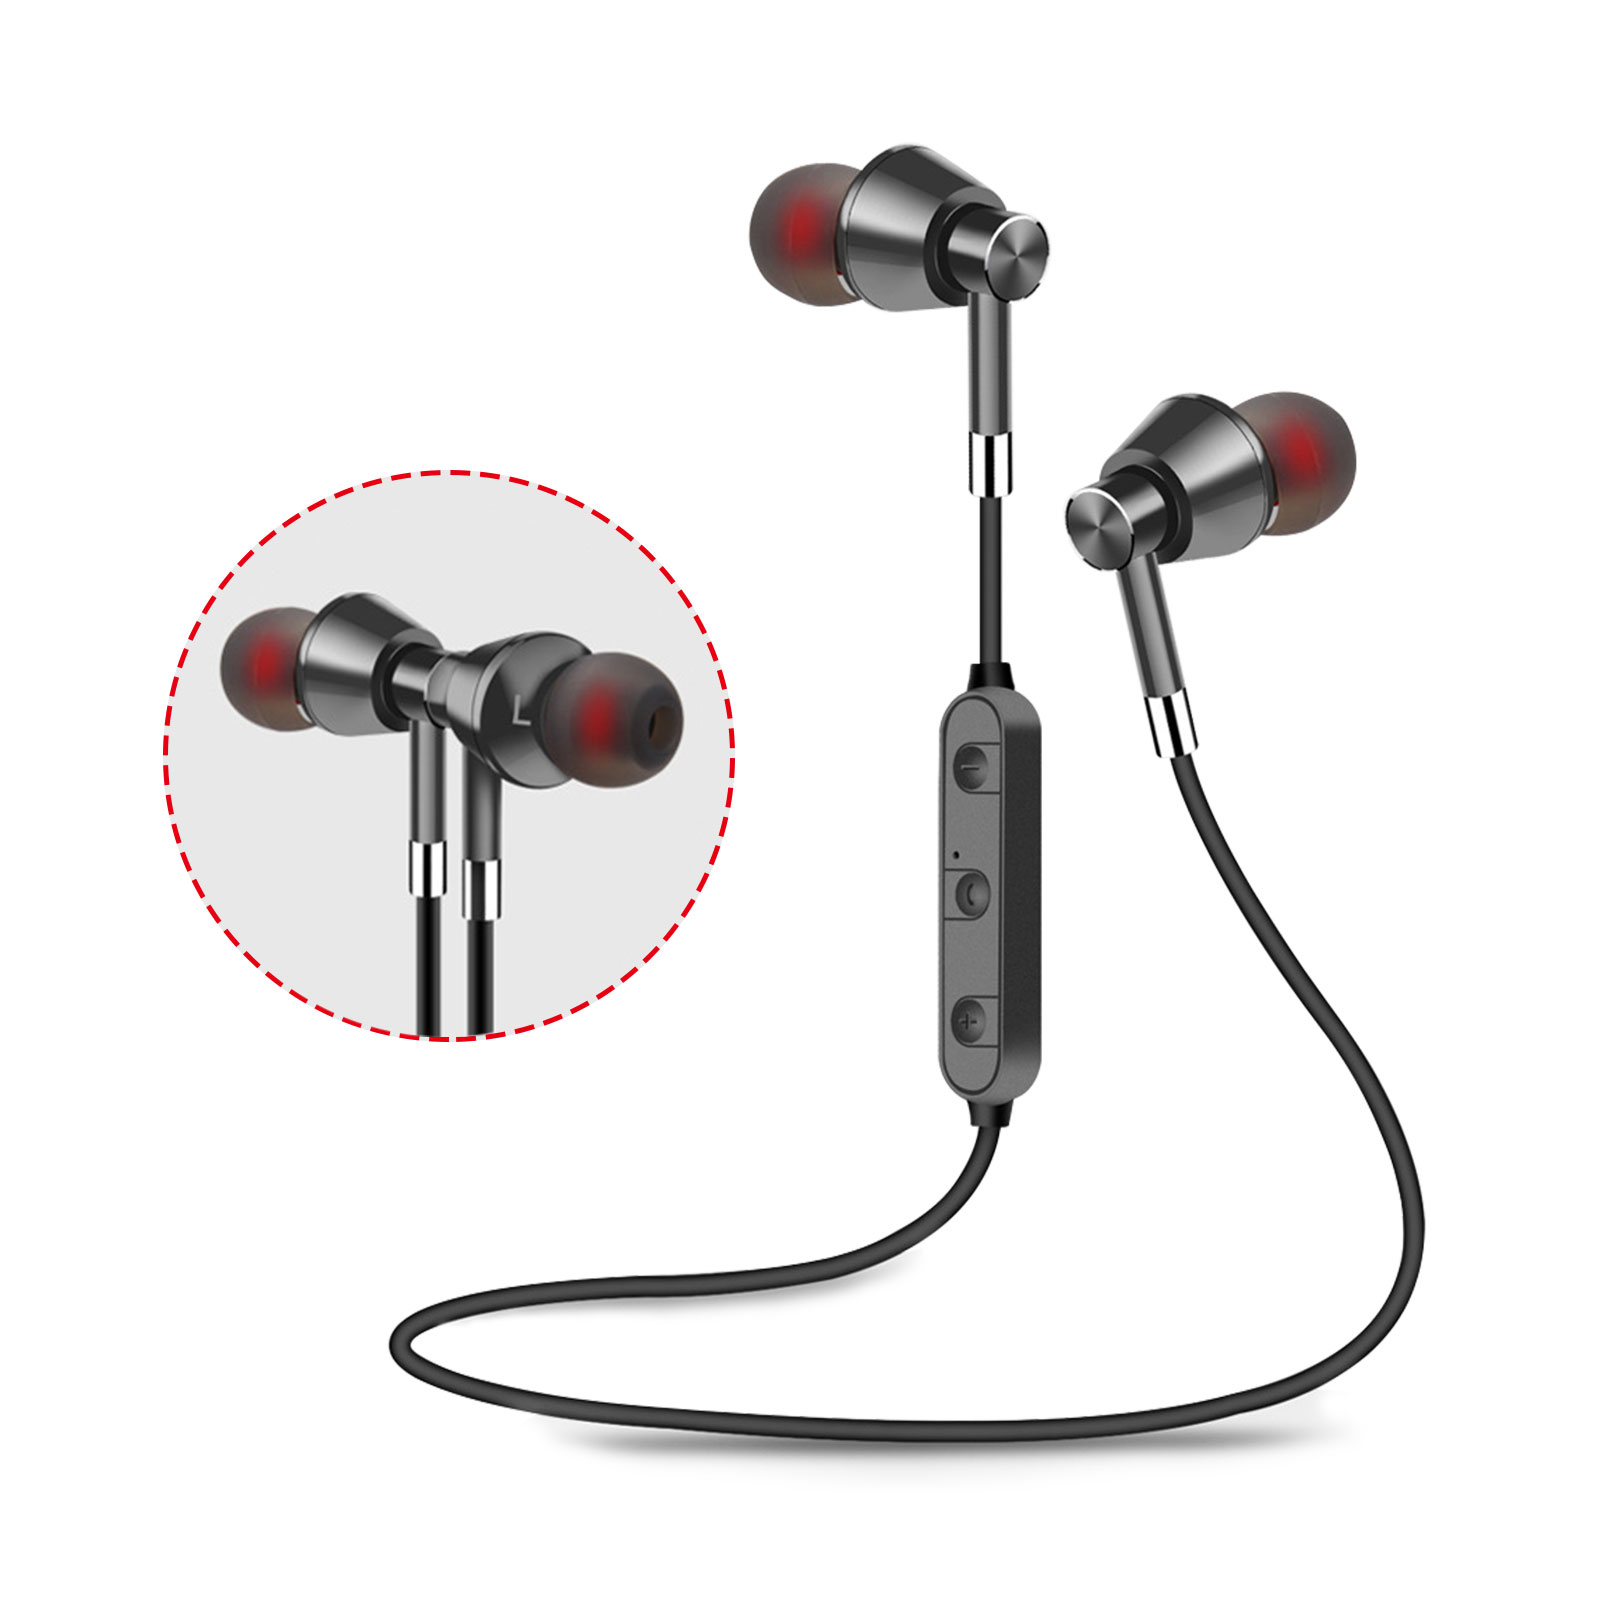 Bluetooth Earbuds Wireless Magnetic Headset Sport Earphones for Running Waterproof Headphones 3 Hours Playtime High Fidelity Stereo Sound and Noise Cancelling Mic